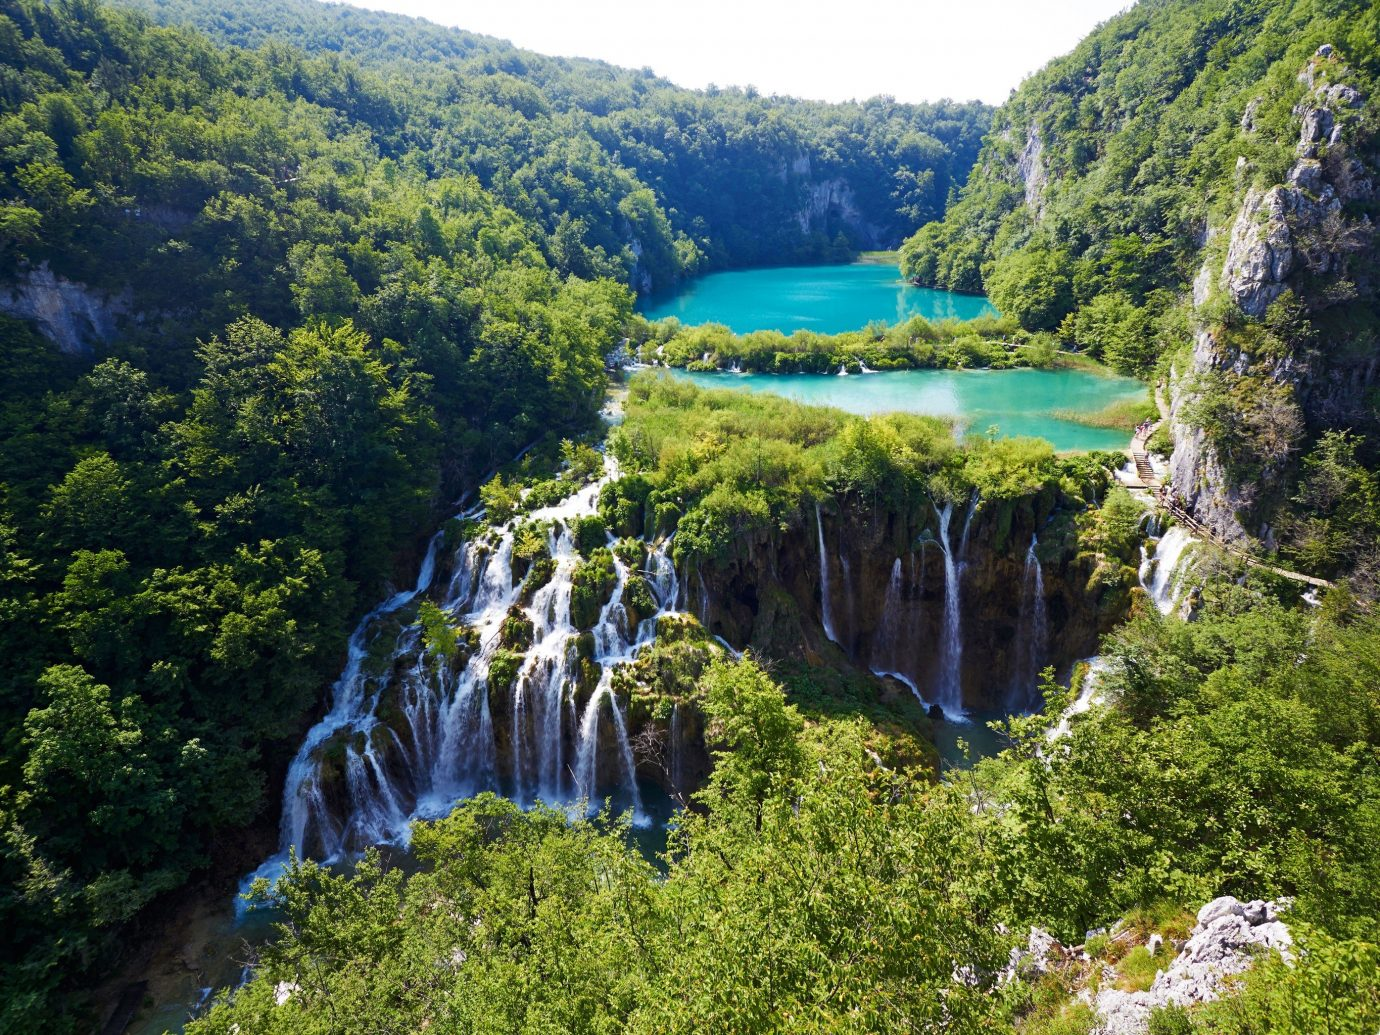 Jetsetter Guides tree outdoor mountain nature reserve Waterfall Nature body of water River water feature Forest park fjord Lake rainforest national park reservoir hillside wooded surrounded lush